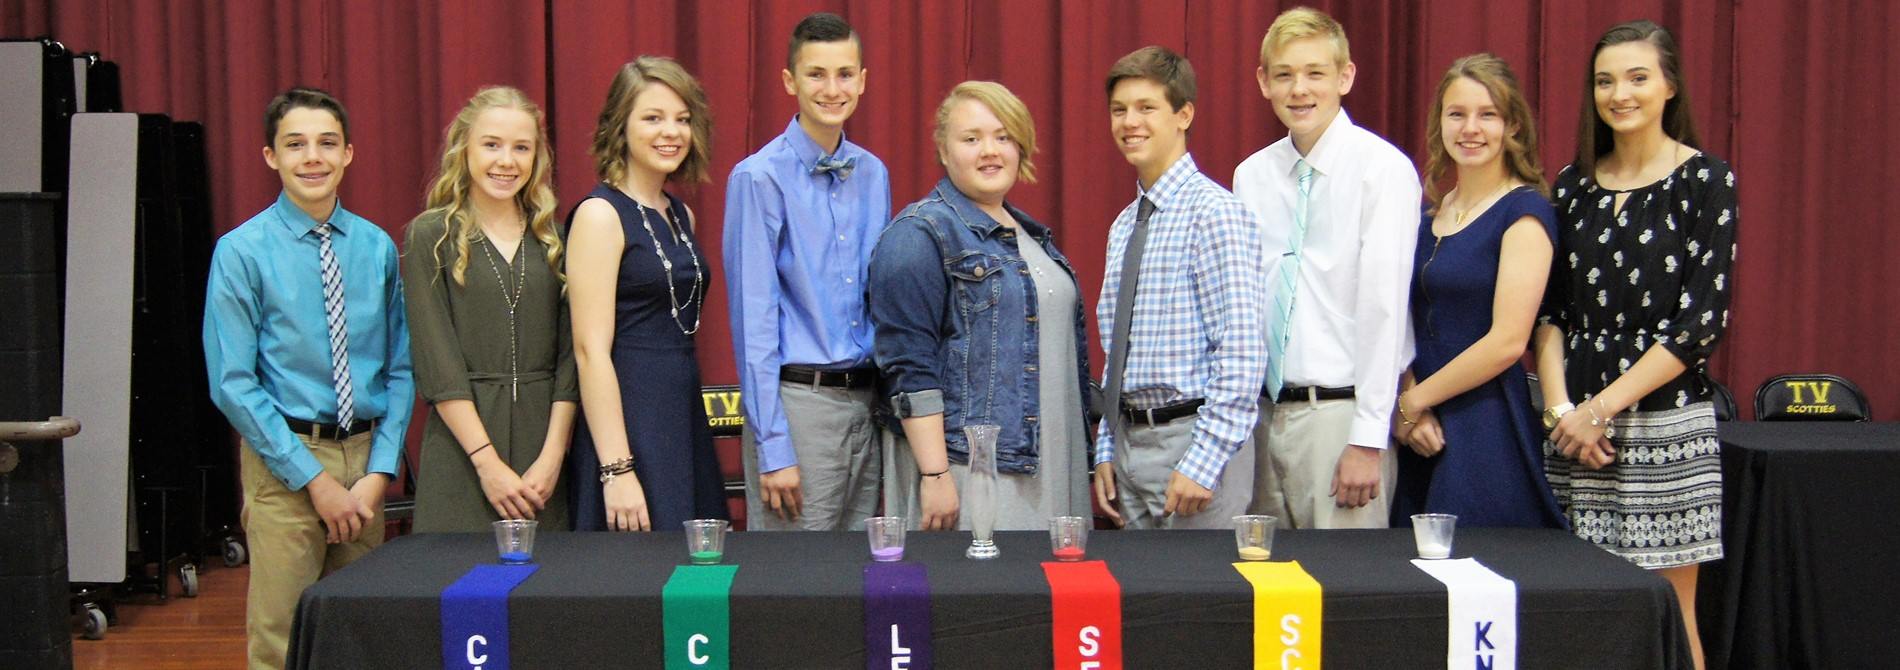 TVMS Honor Society Speakers